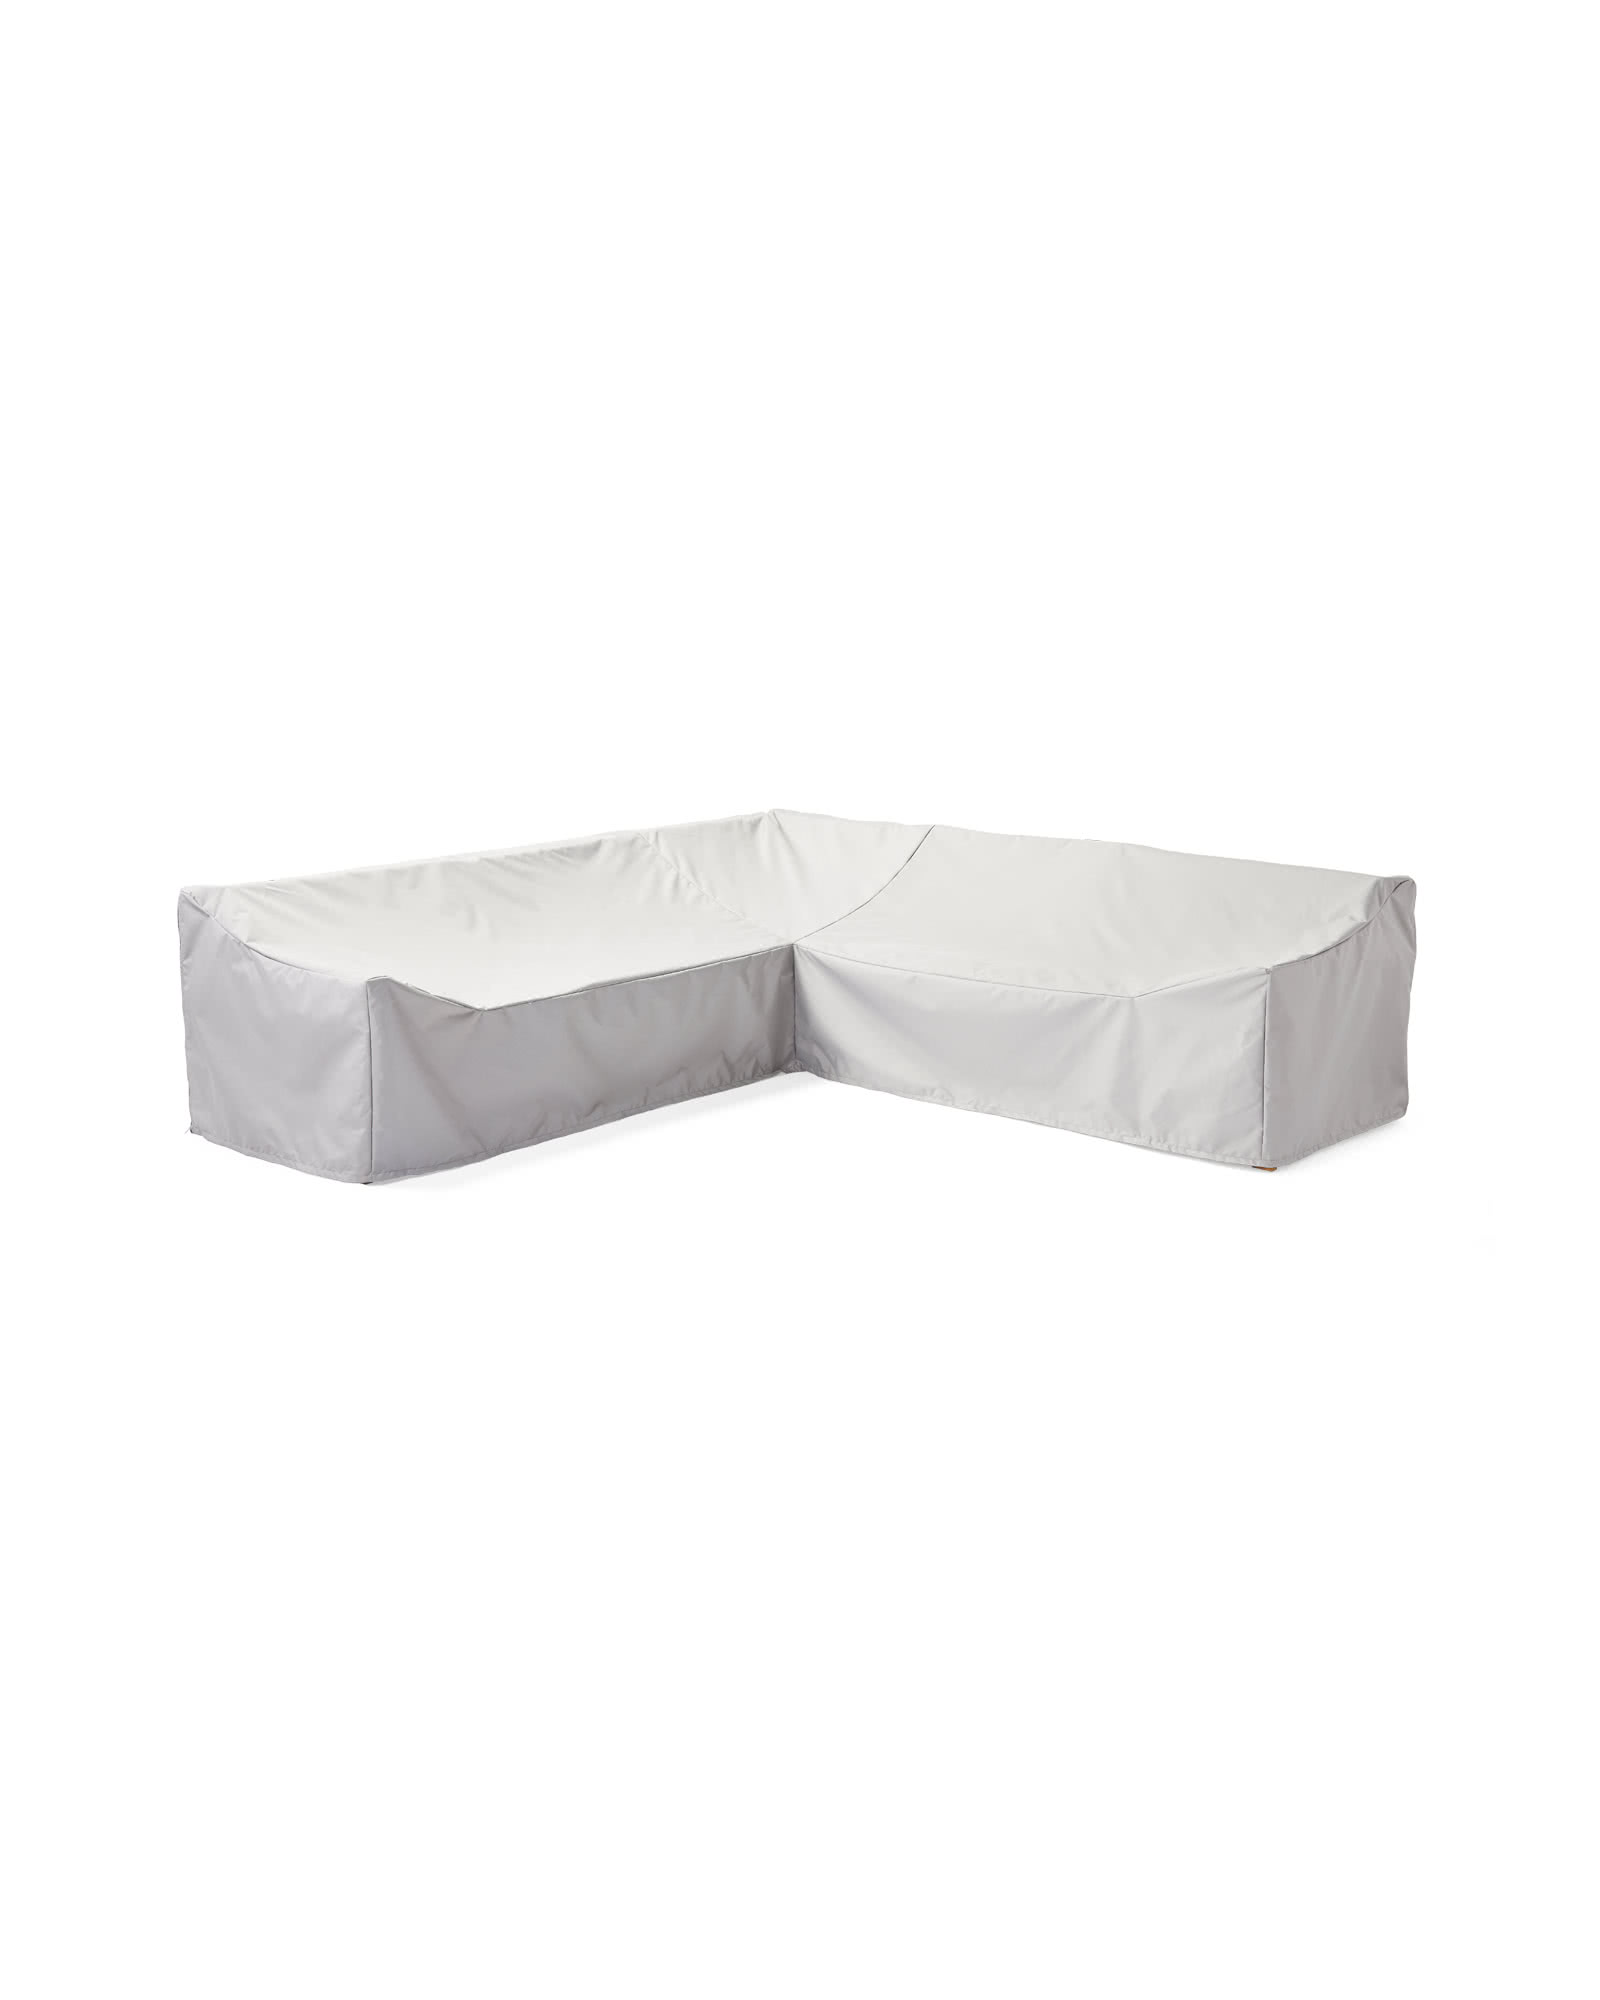 Cliffside Teak Sectional Outdoor Cover,